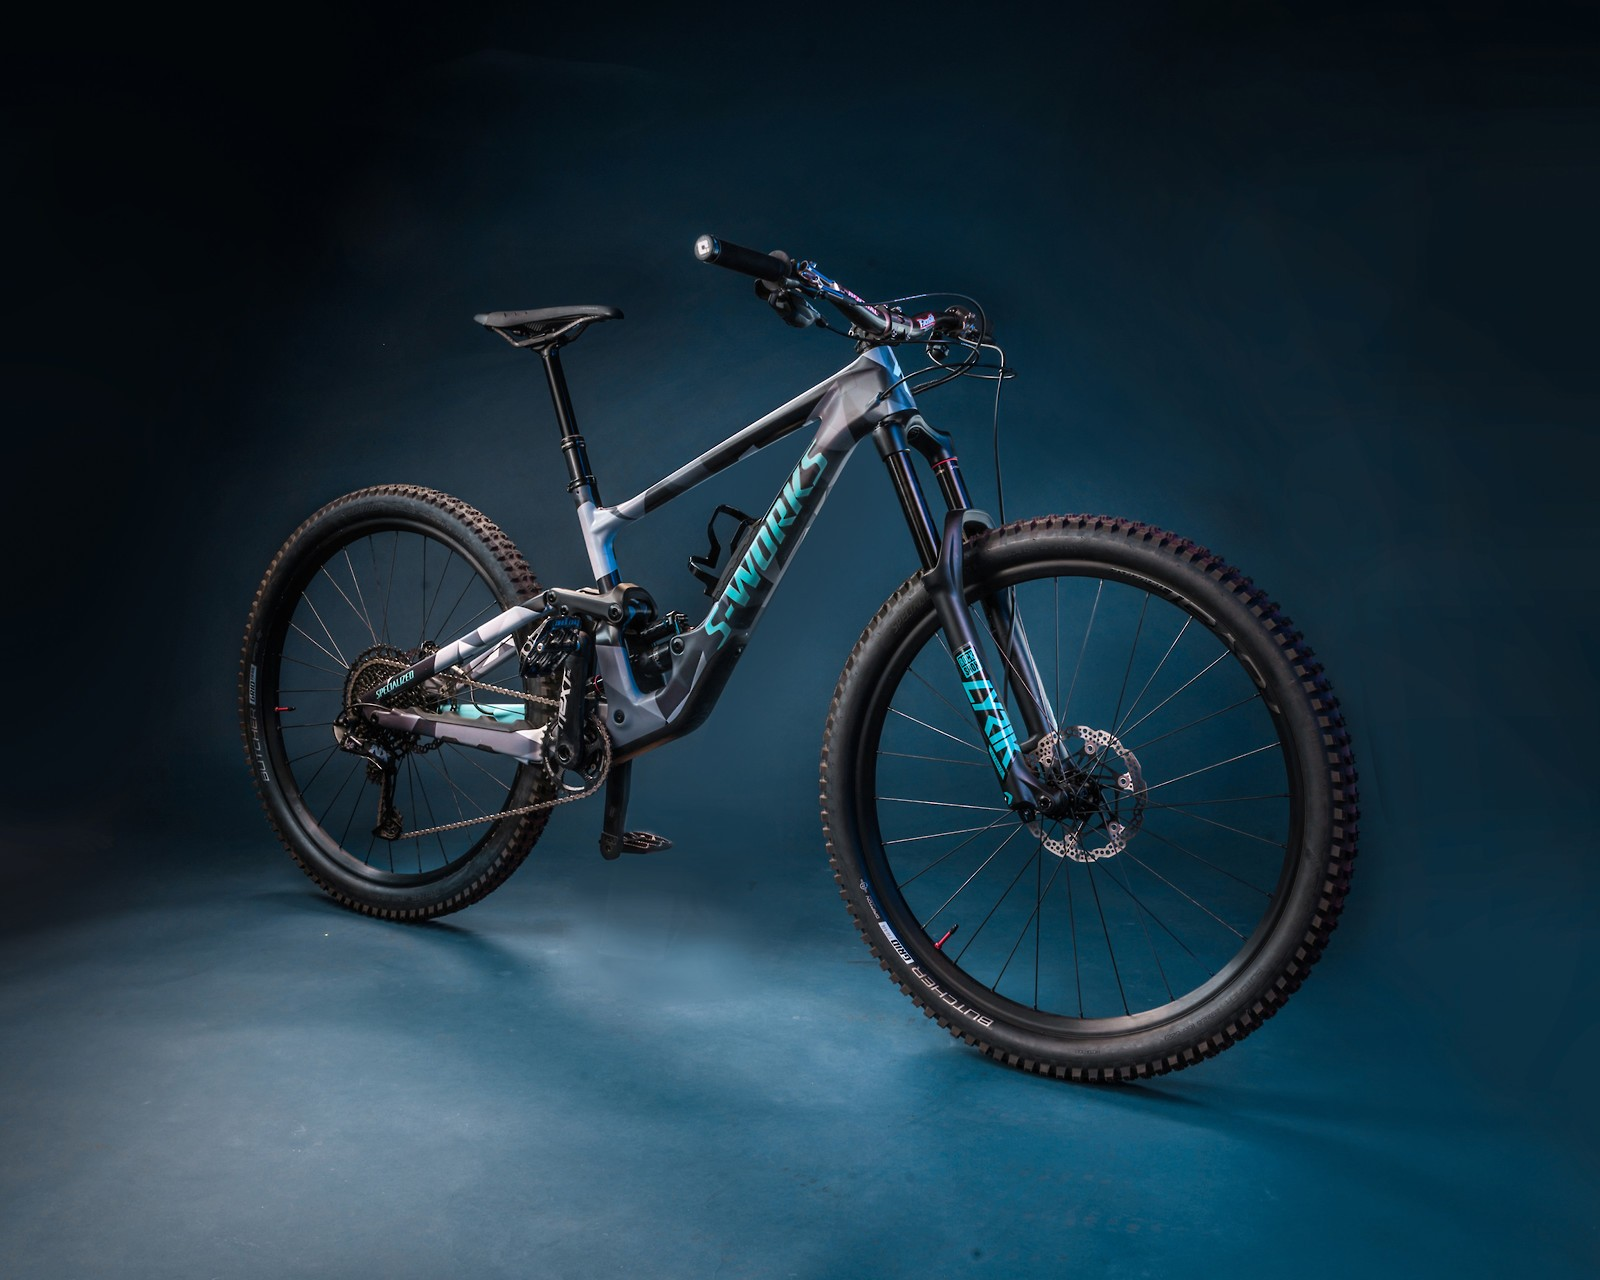 Specialized S-Works Enduro - Vital Bike of the Day April 2020 - Mountain Biking Pictures - Vital MTB